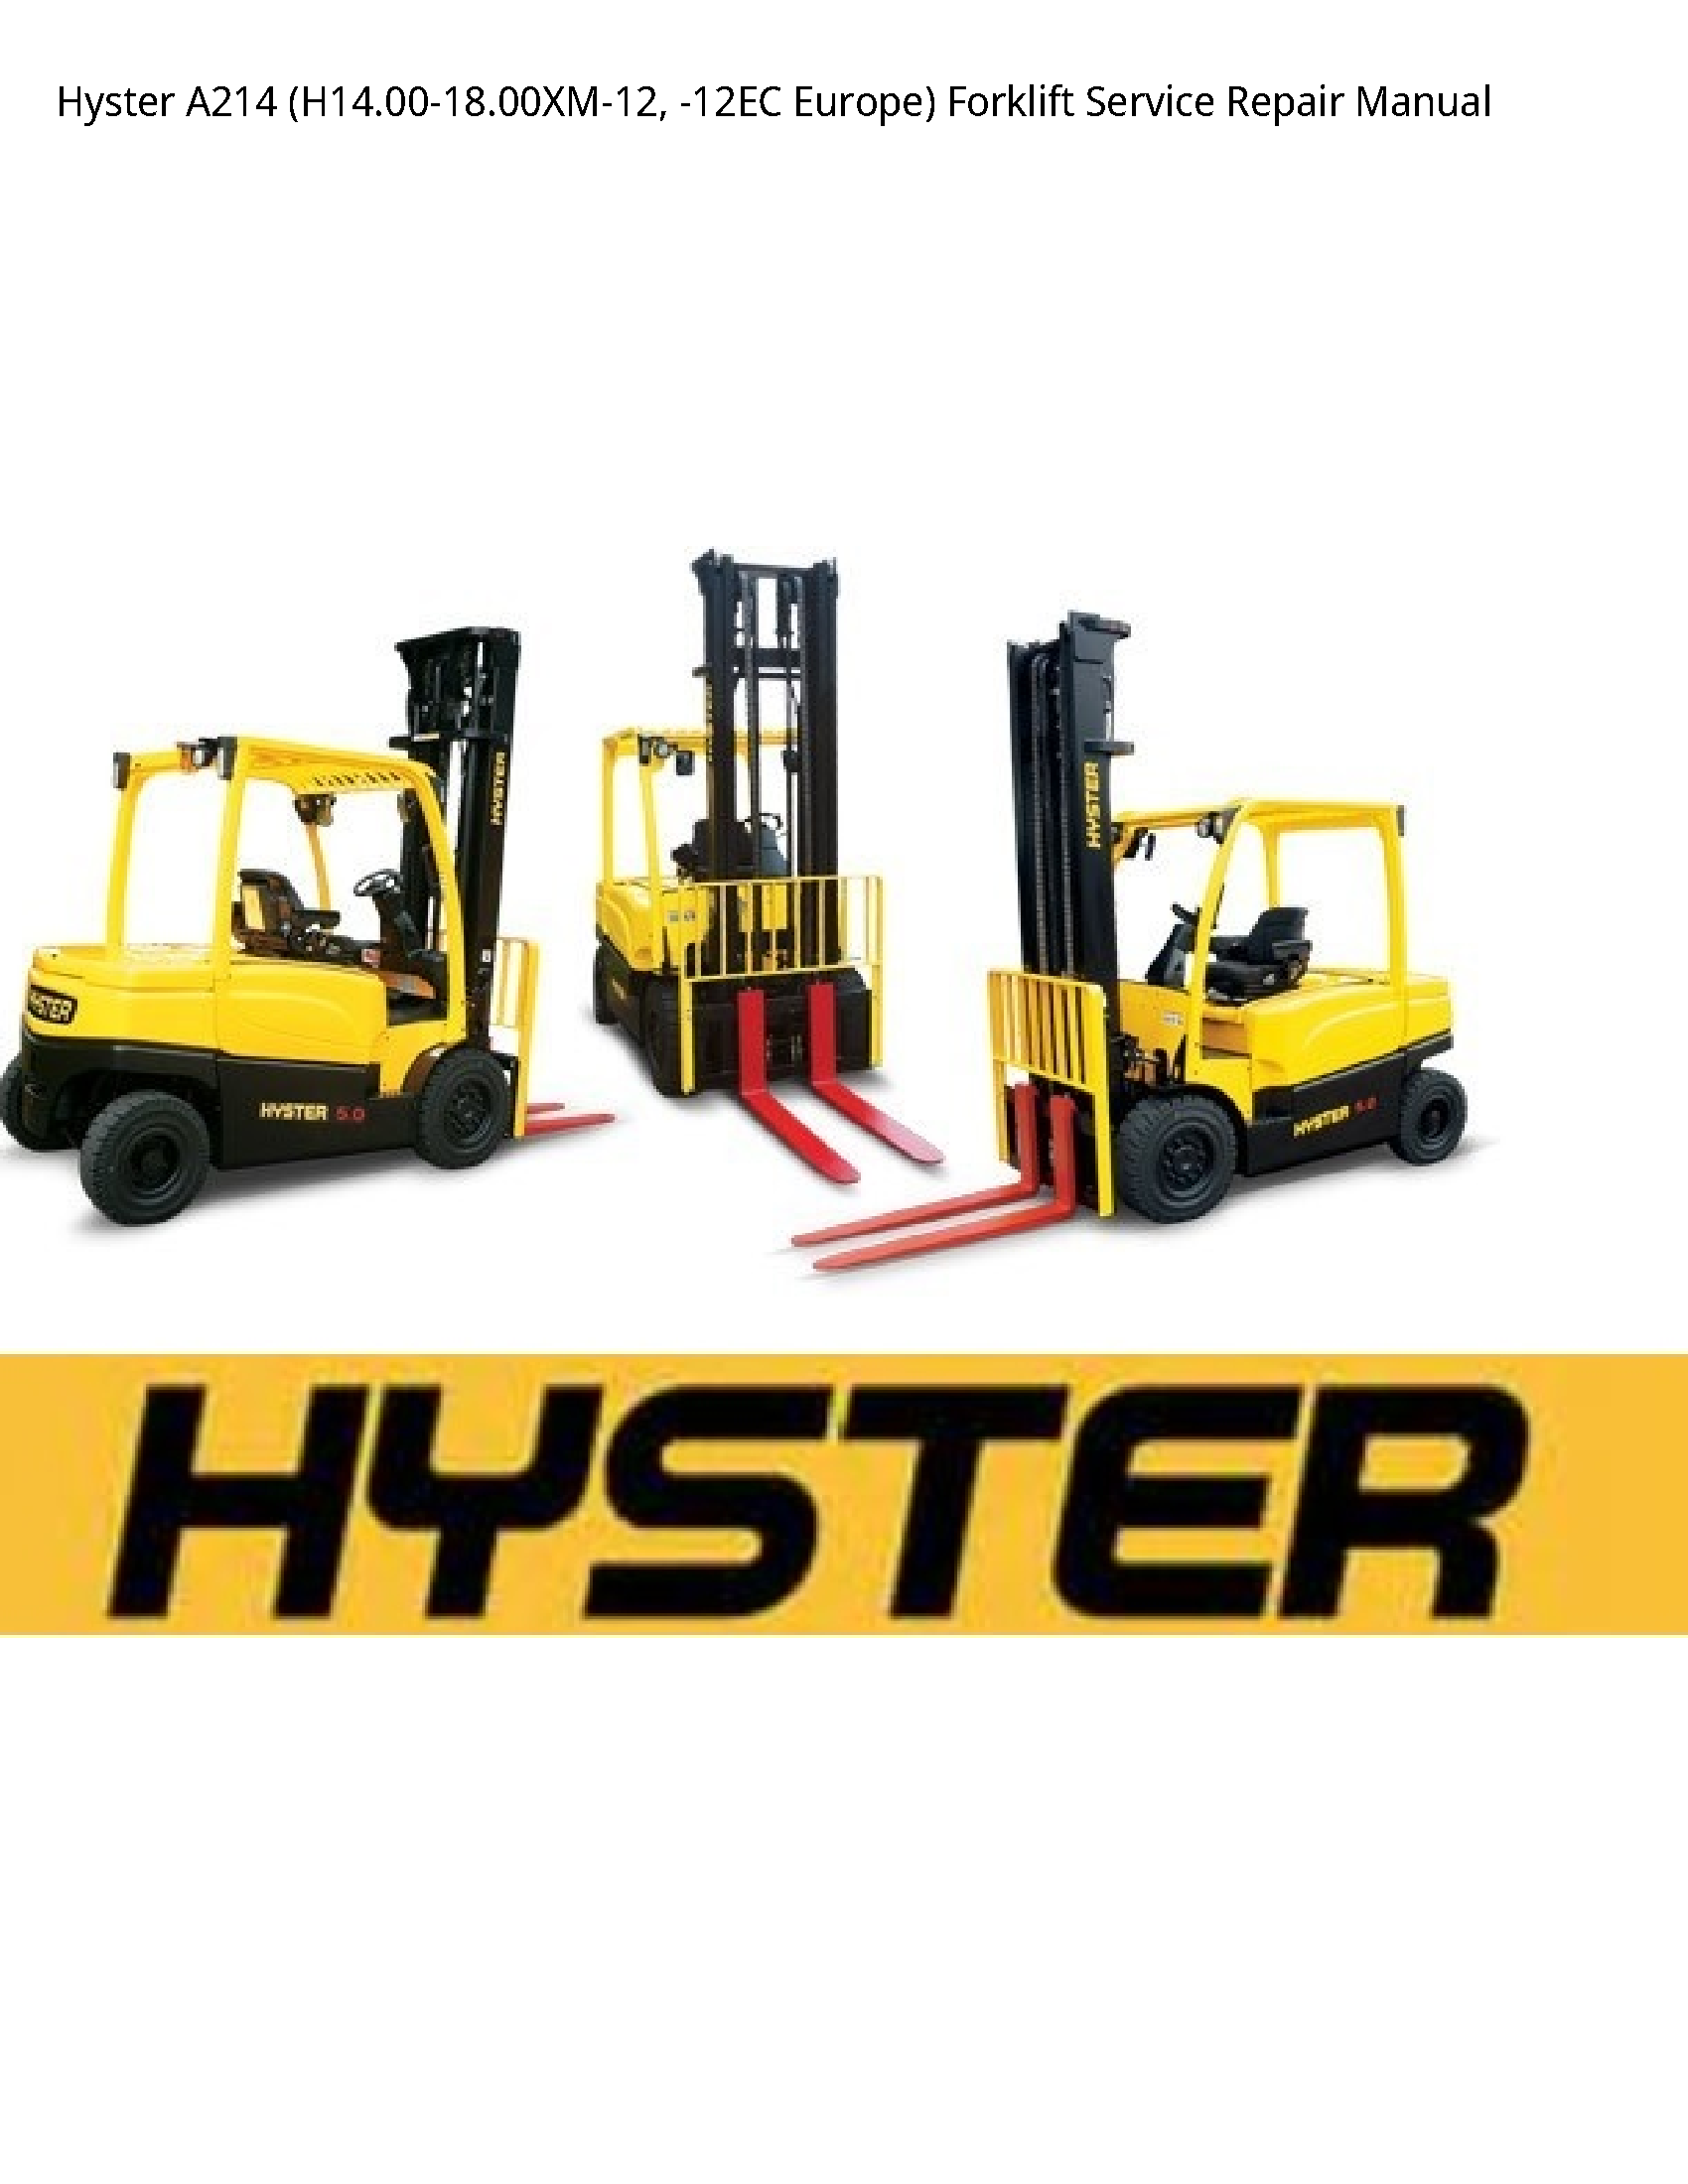 Hyster A214 Europe) Forklift manual